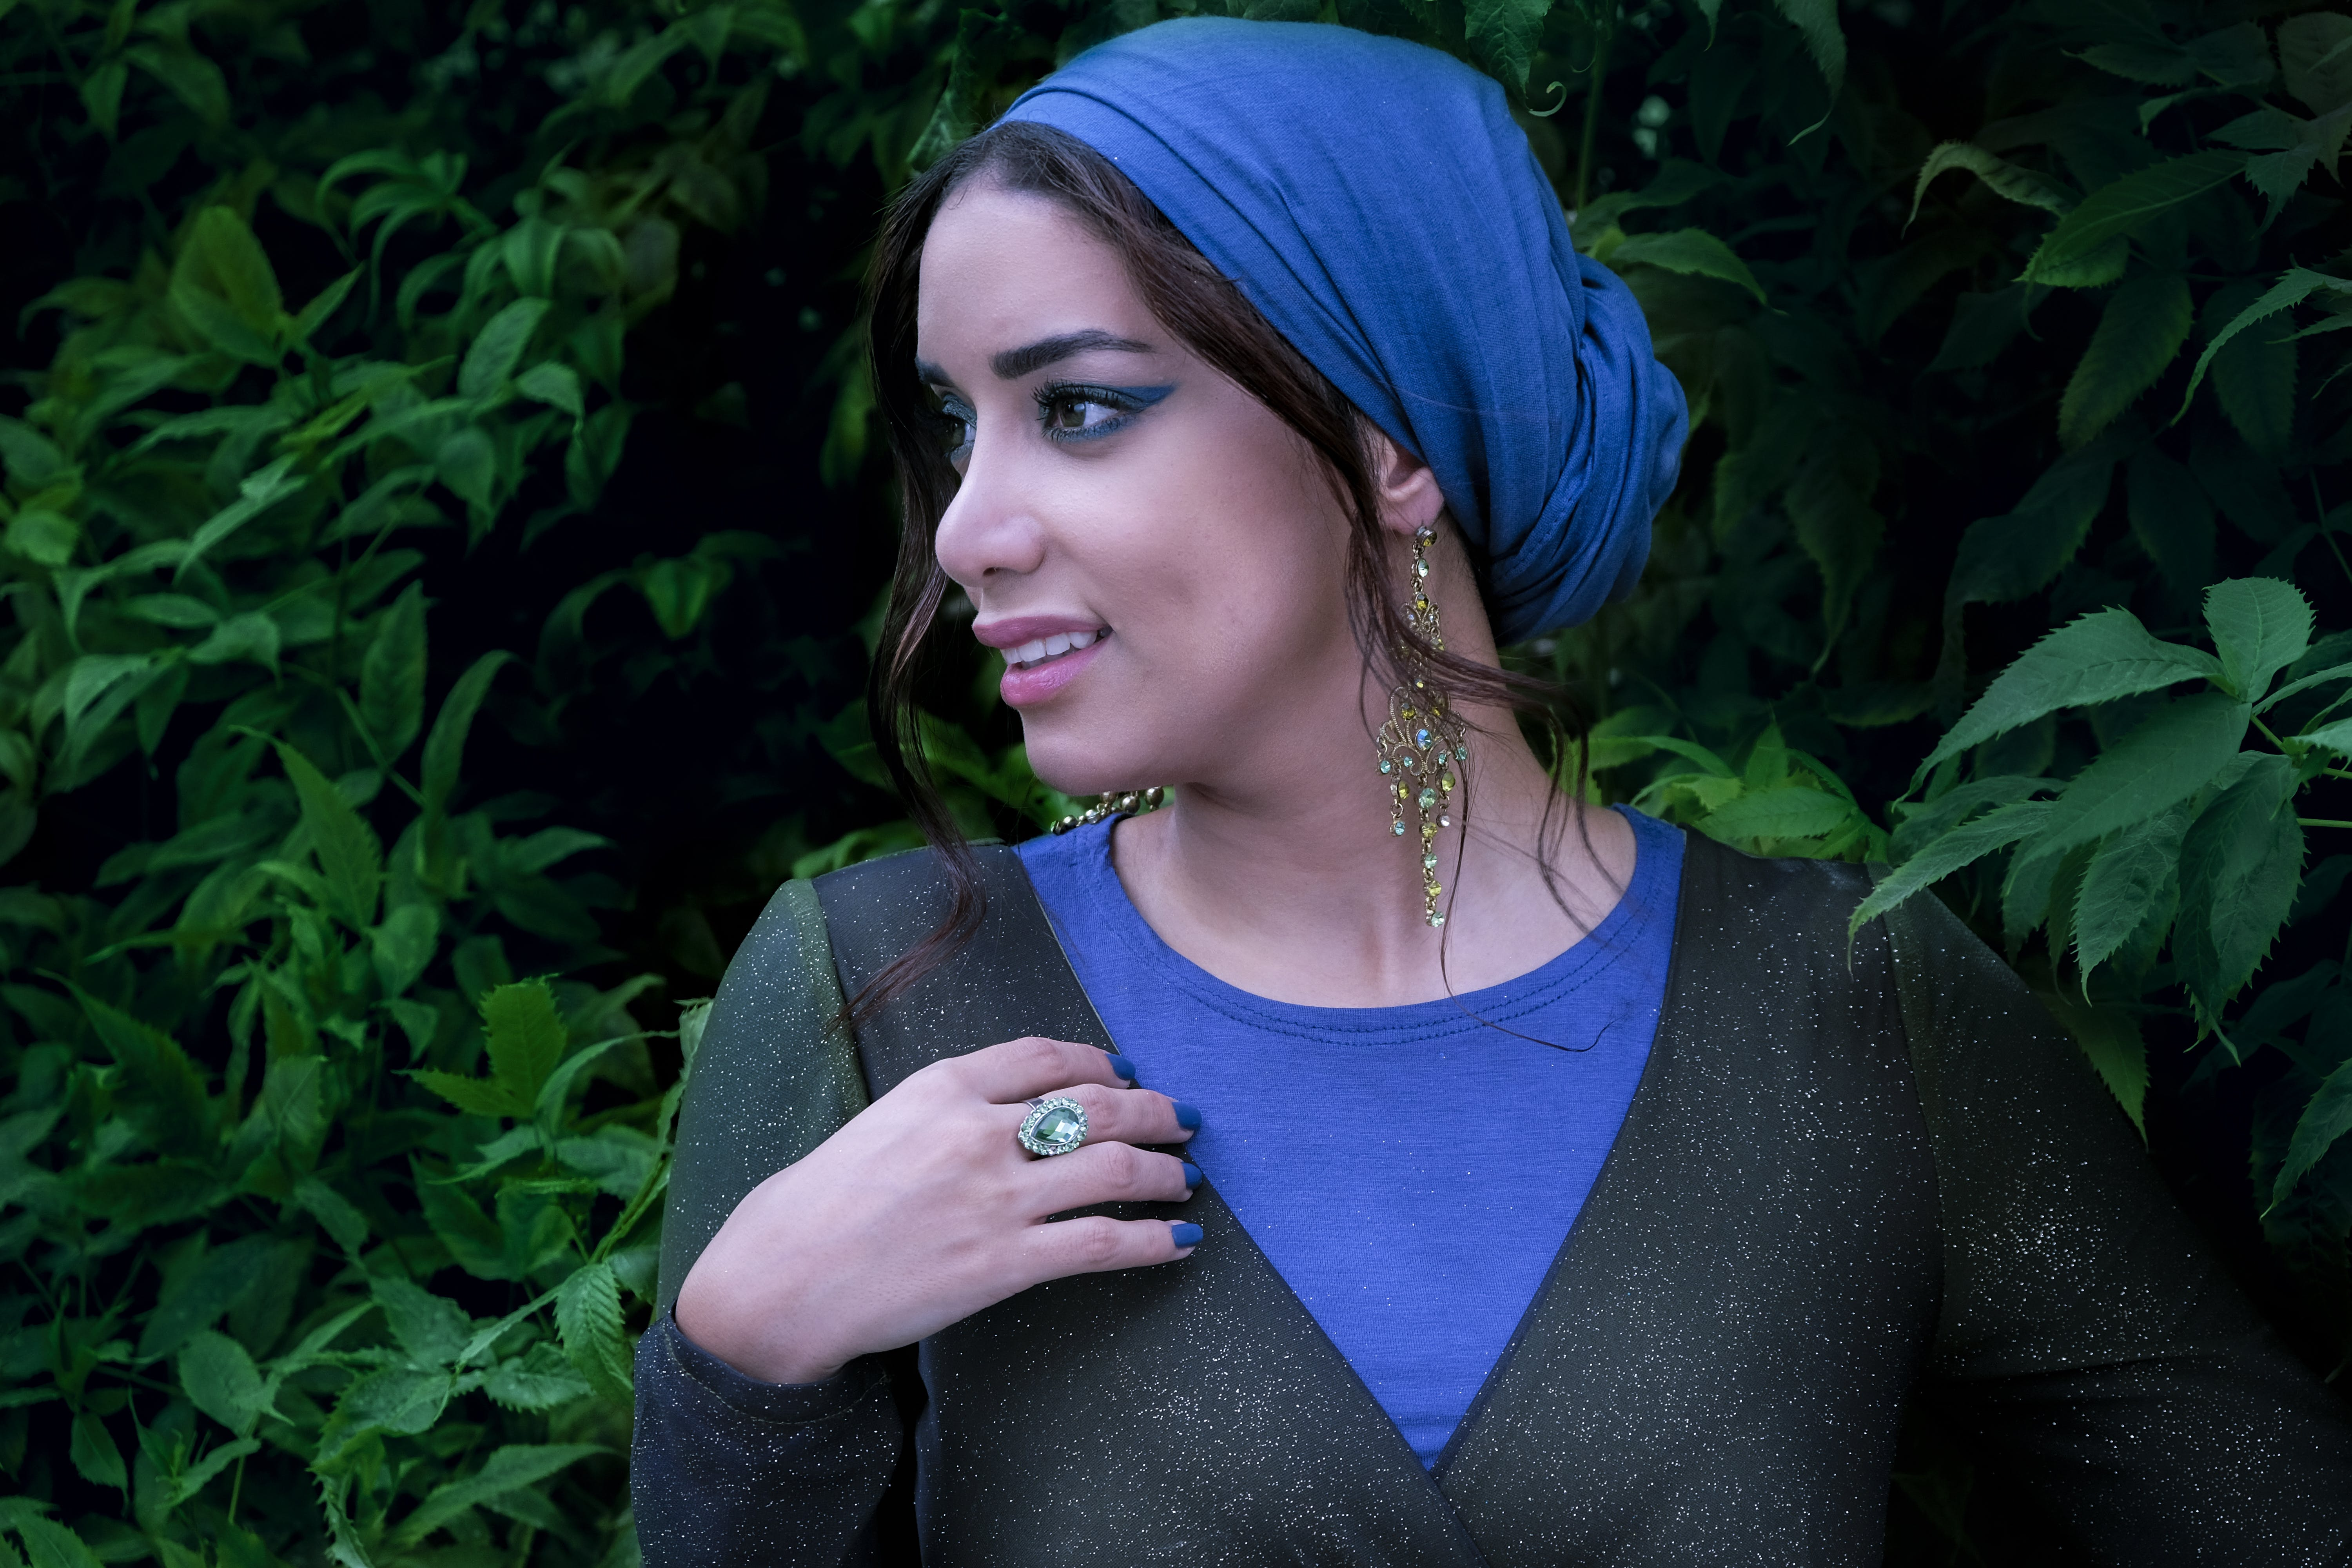 Woman Wearing Blue and Black Crew-neck Top